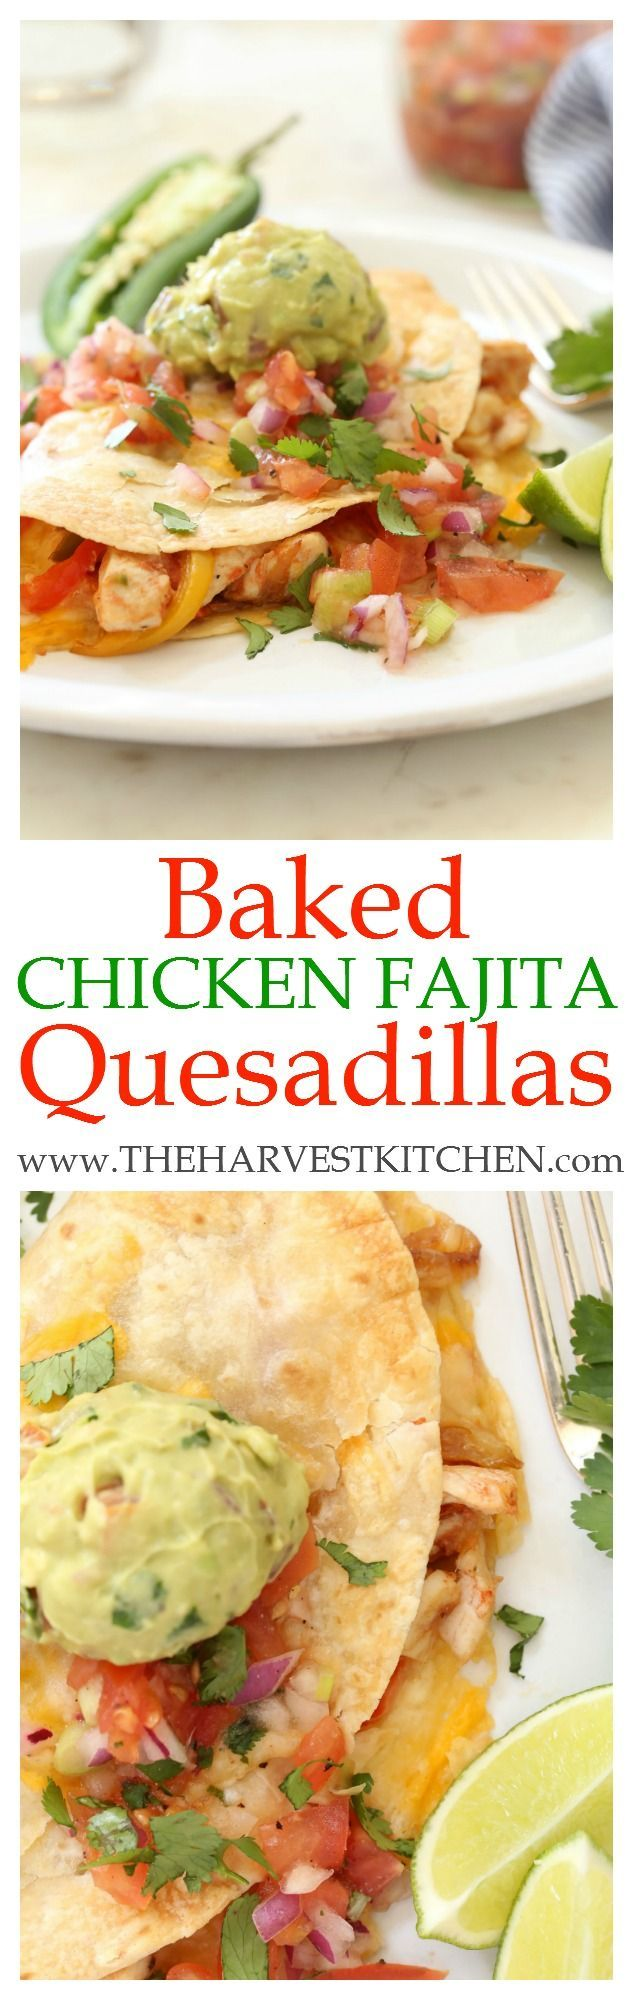 These crispy Baked Chicken Fajita Quesadillas are stuffed with savory Mexican flavors - tender bites of chicken cooked with garlic, jalapeño and tomato, some lightly browned onion, bell peppers and a blend of cheeses.  So easy to make - just pop a cookie sheet full in the oven rather than standing over a hot stove making them one at a time!